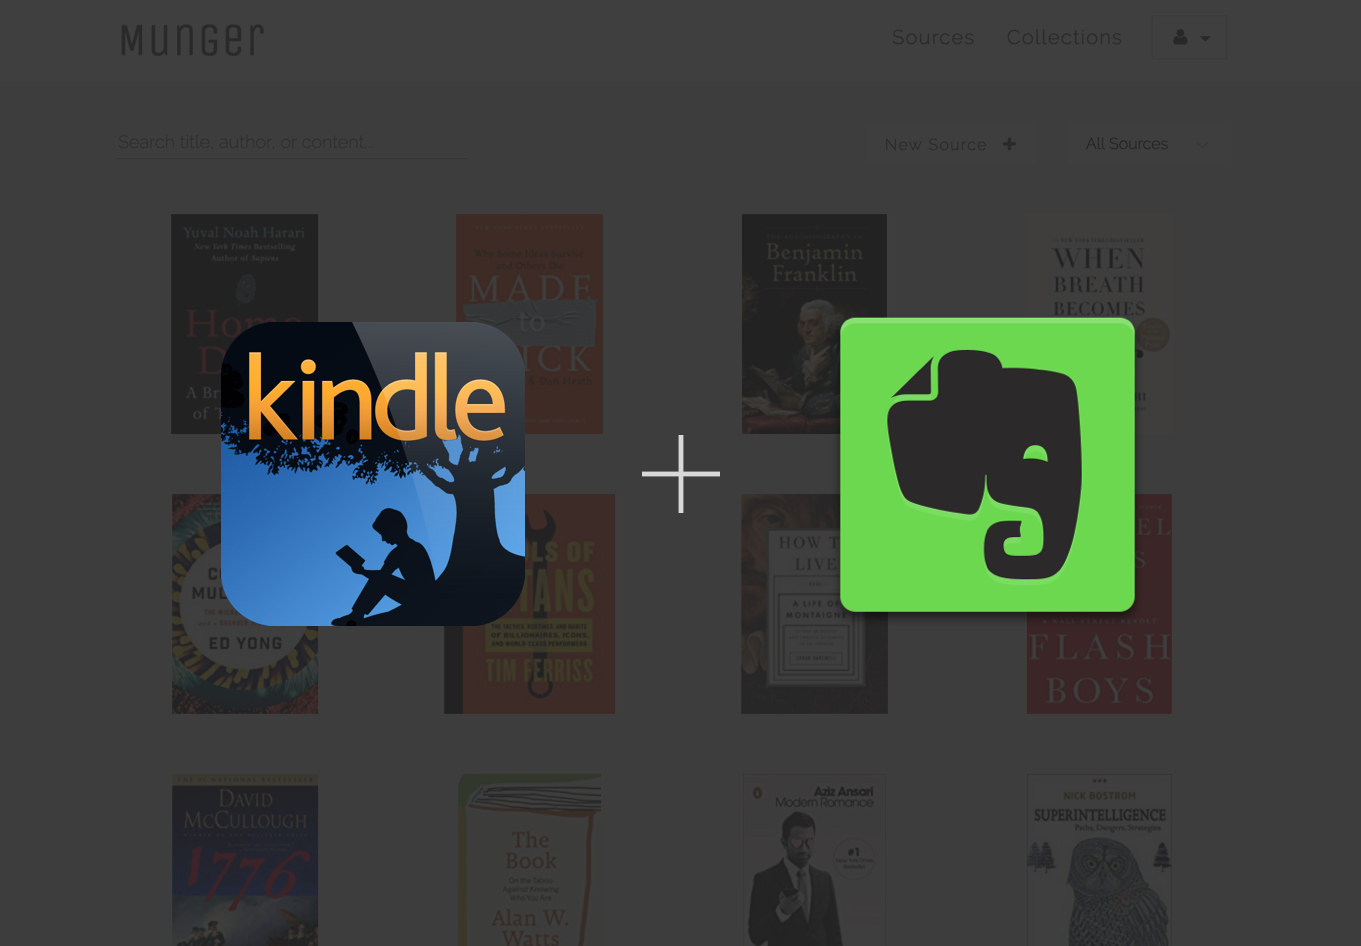 Kindle evernote